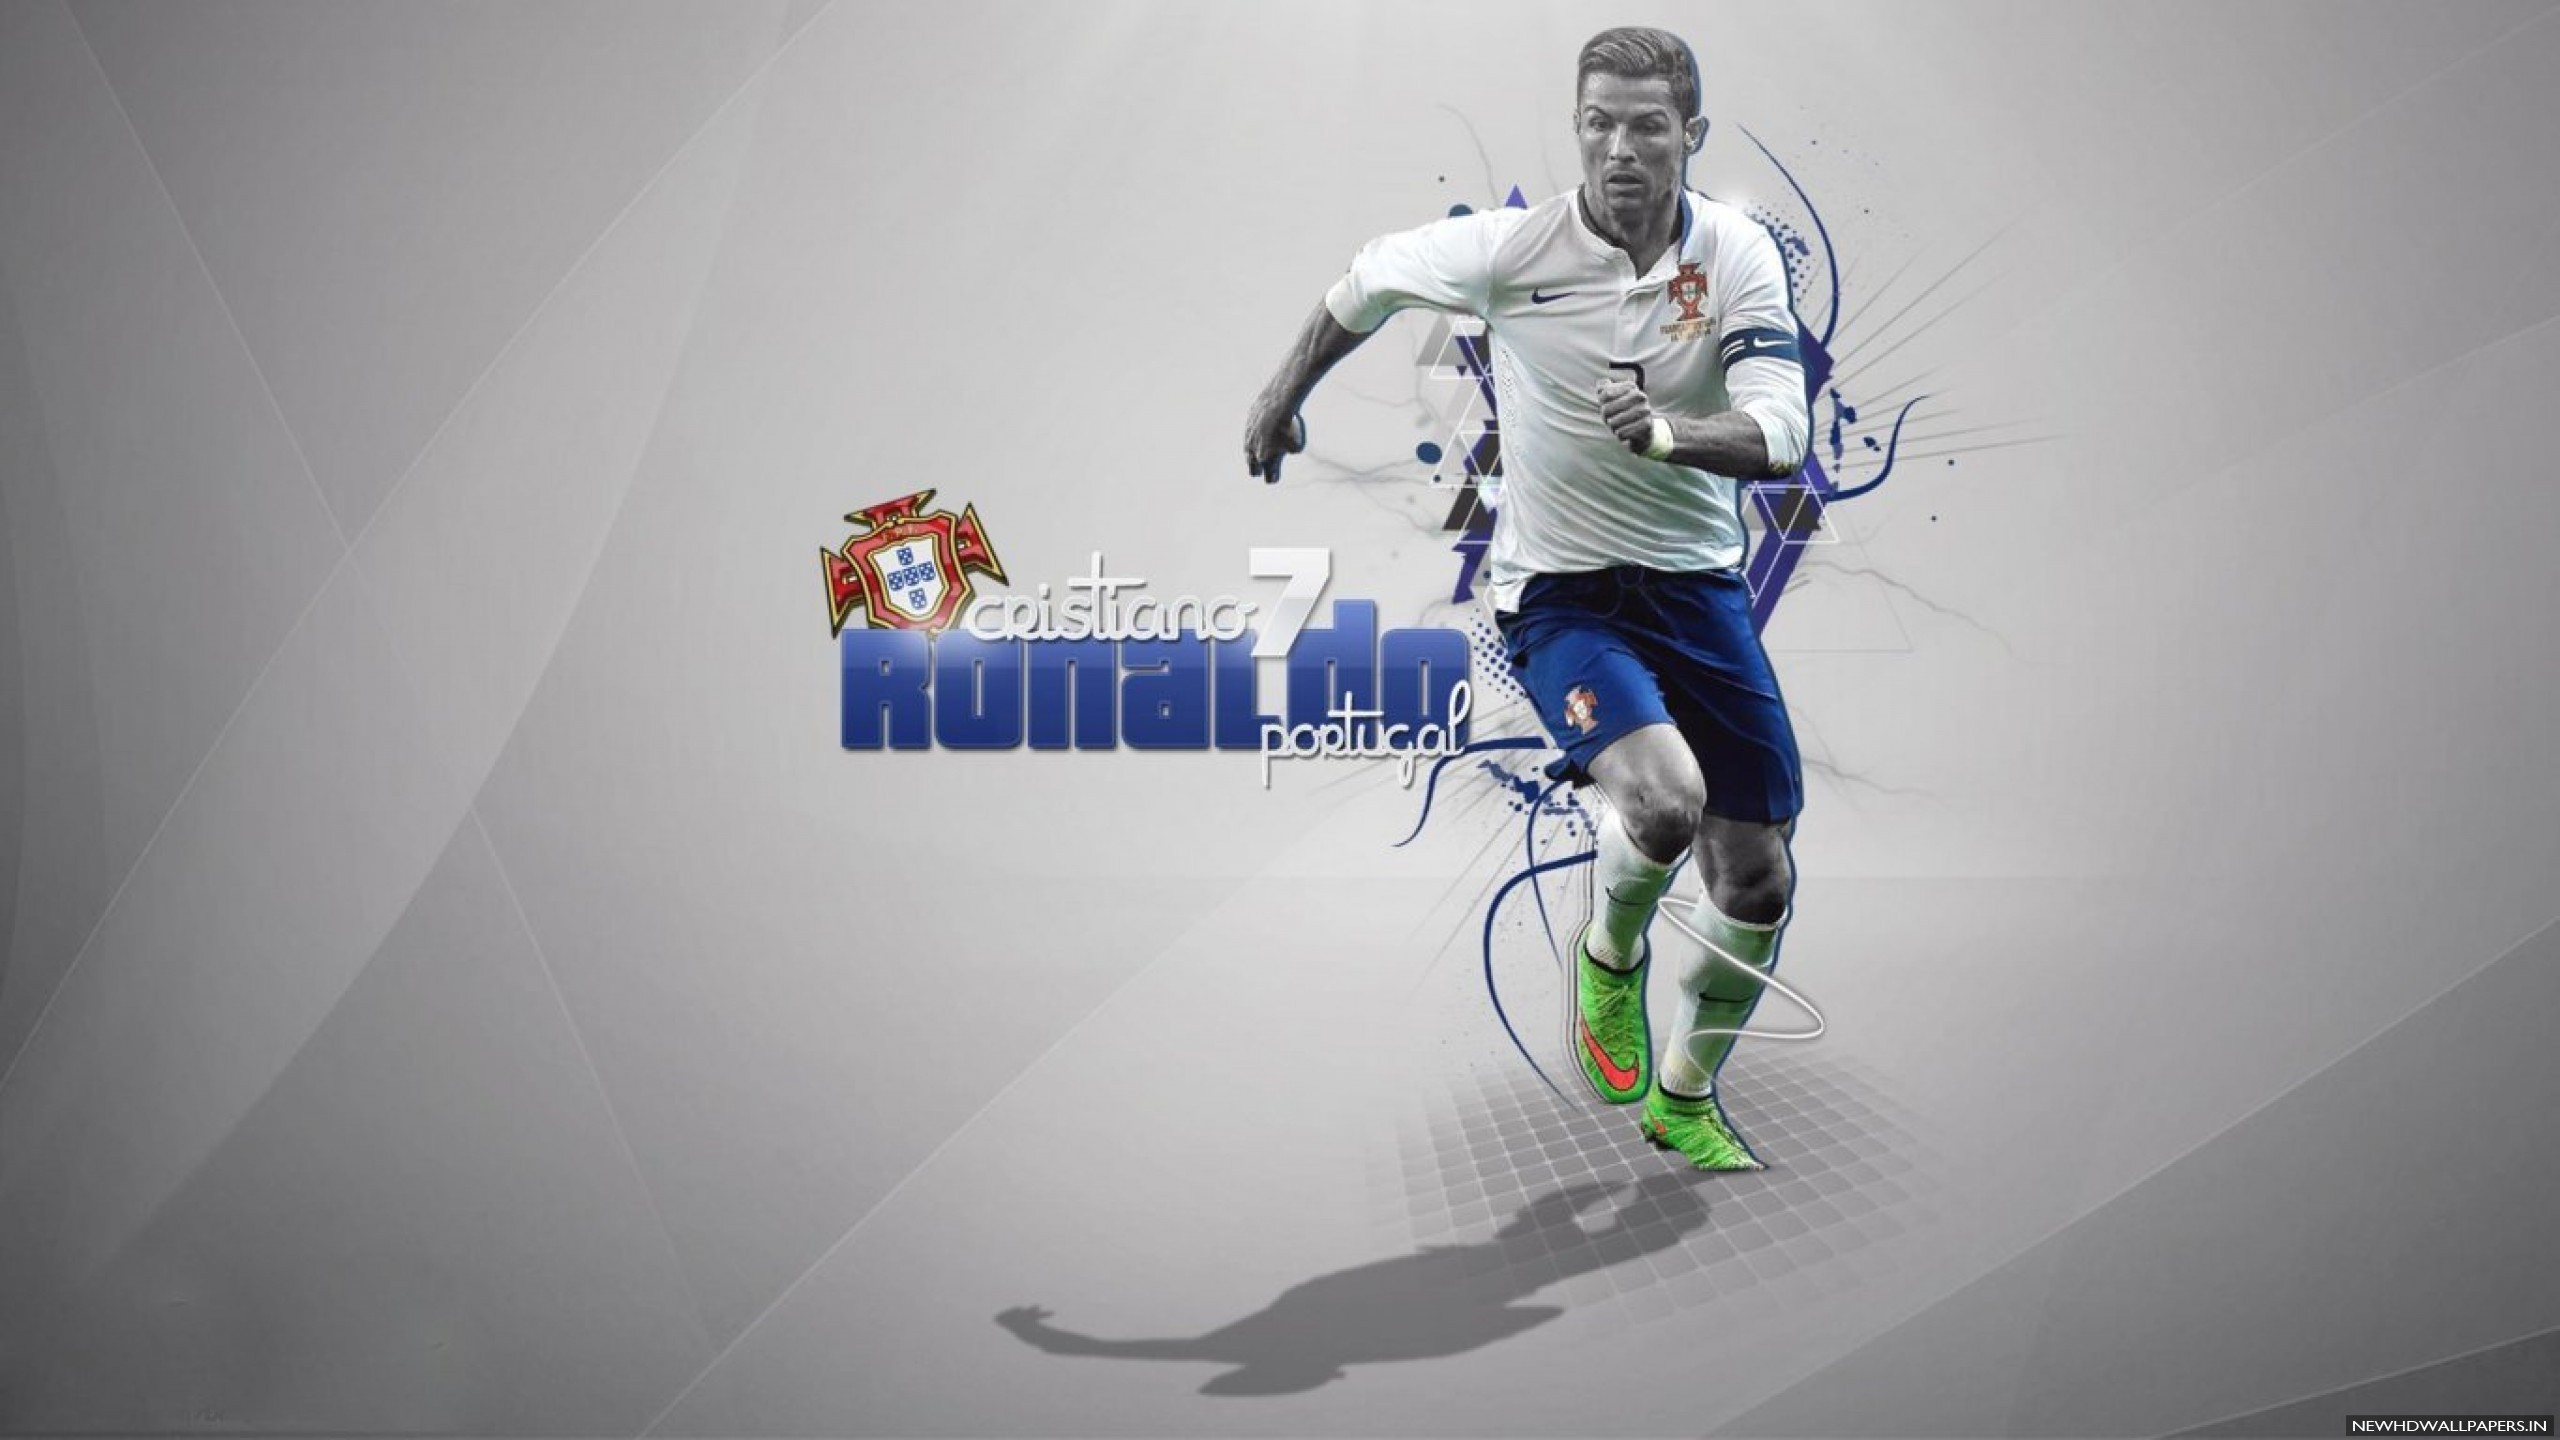 Cristiano Ronaldo 2015 HD Wallpapers   New HD Wallpapers 2560x1440